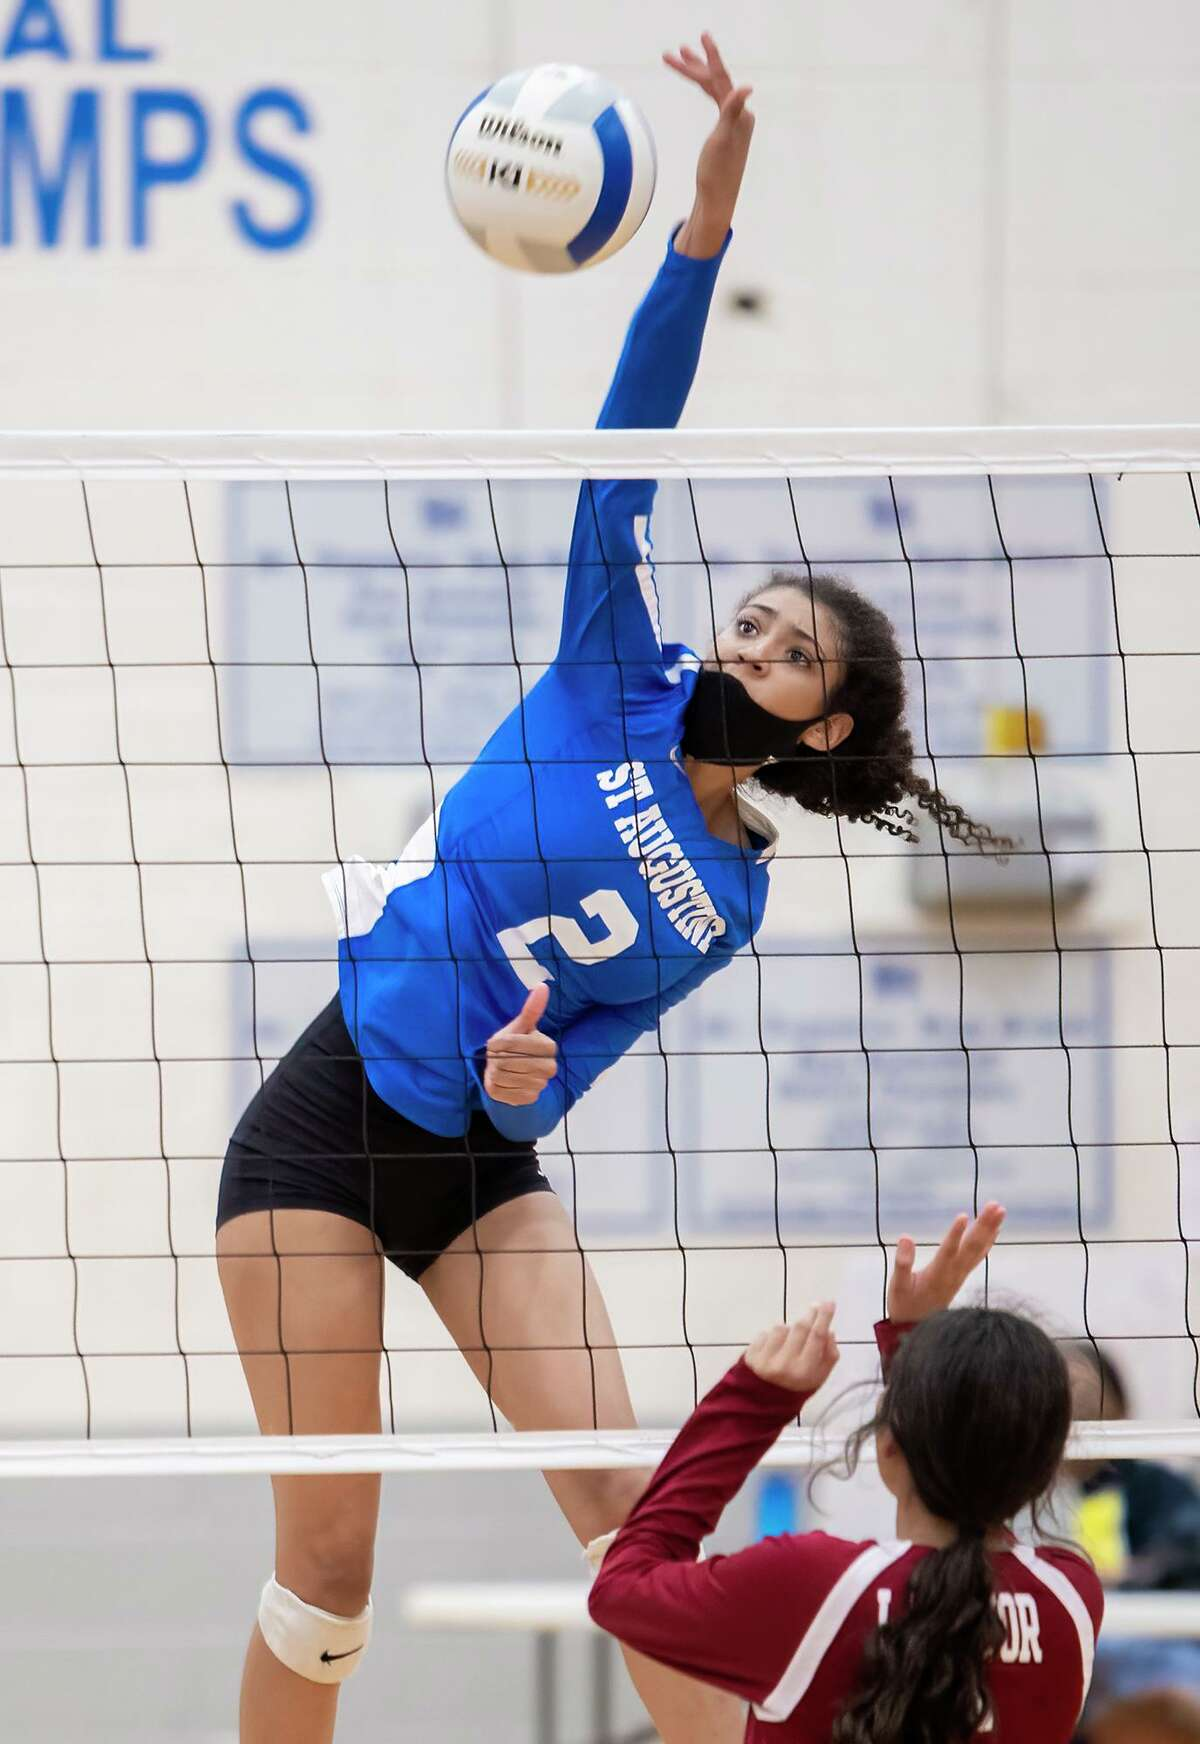 St. Augustine's Ary Ledet had a team-high 15 kills as the Lady Knights rolled 3-0 (25-5, 25-7, 25-15) at home over La Pryor in their season opener on Wednesday, Aug. 11, 2021.